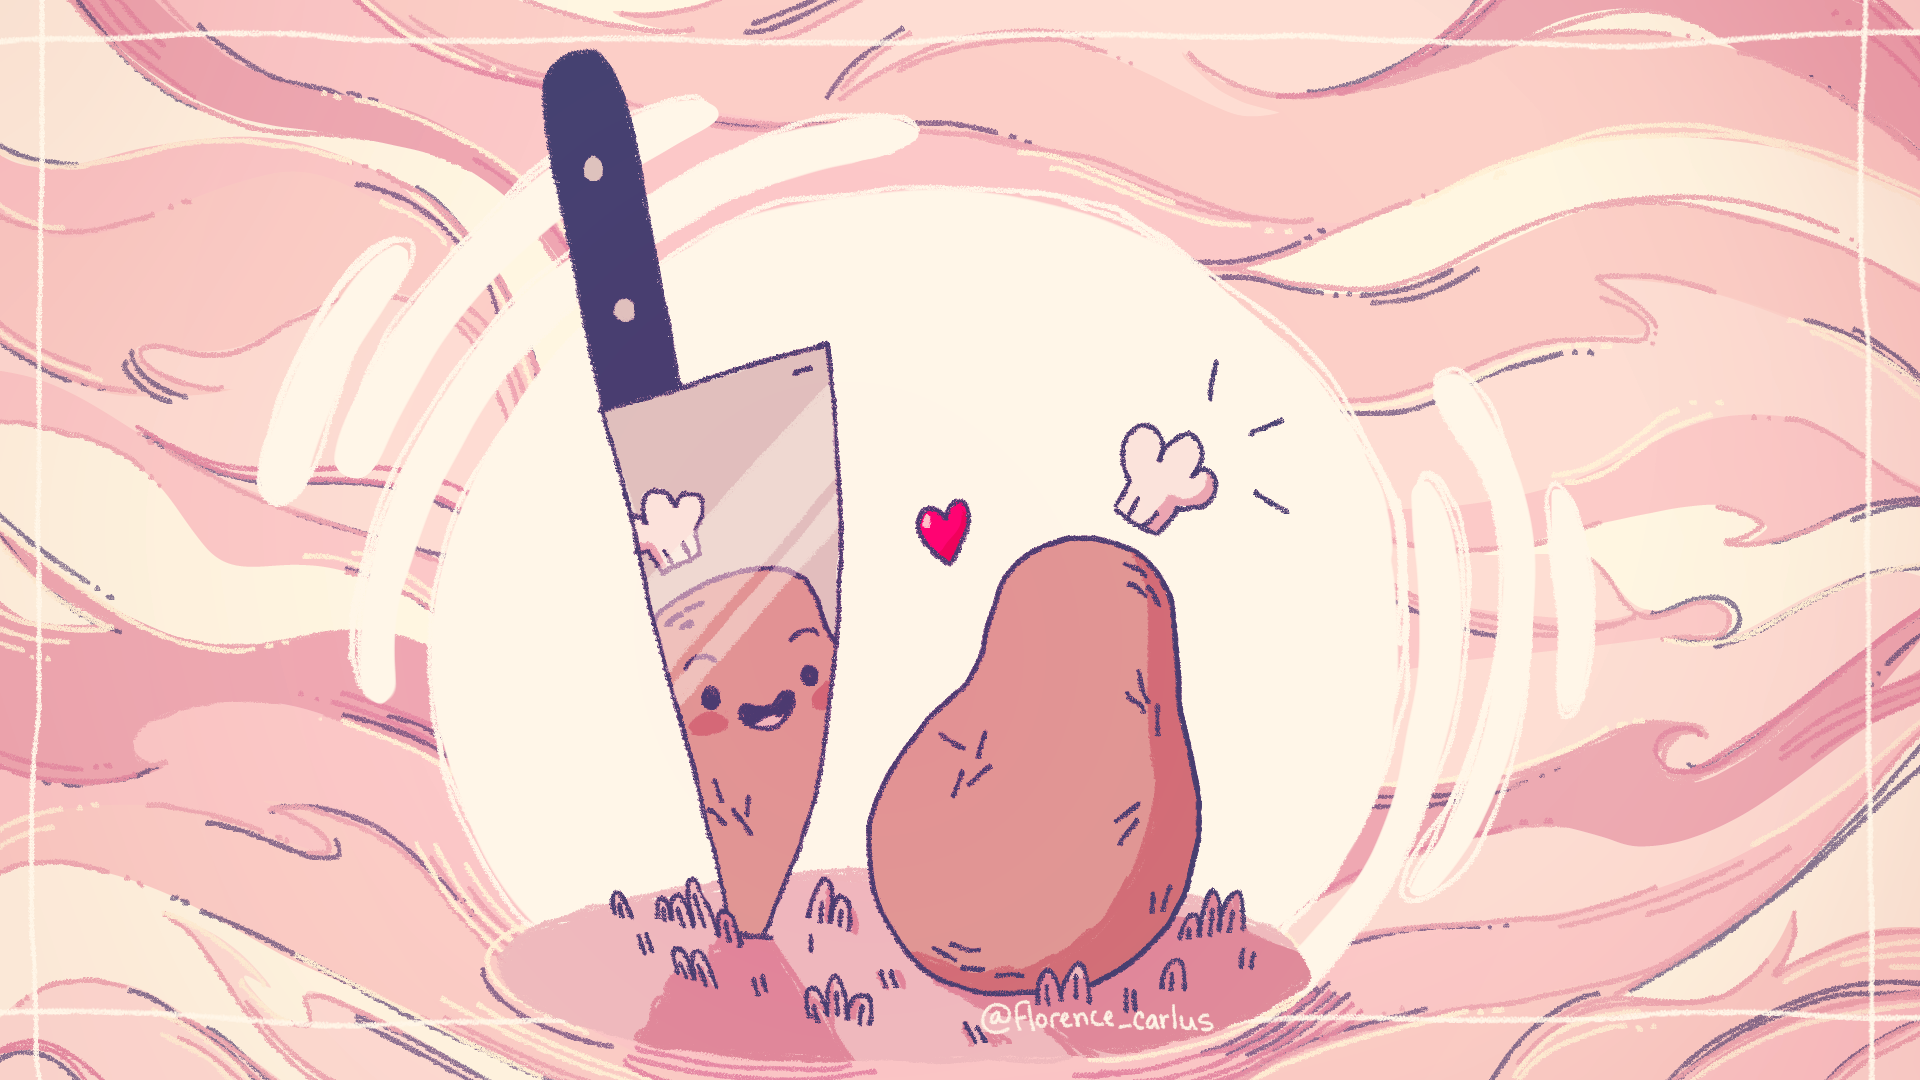 A drawing of a potato with a face and a tiny chef hat, looking at their reflection in a knife blade with joy